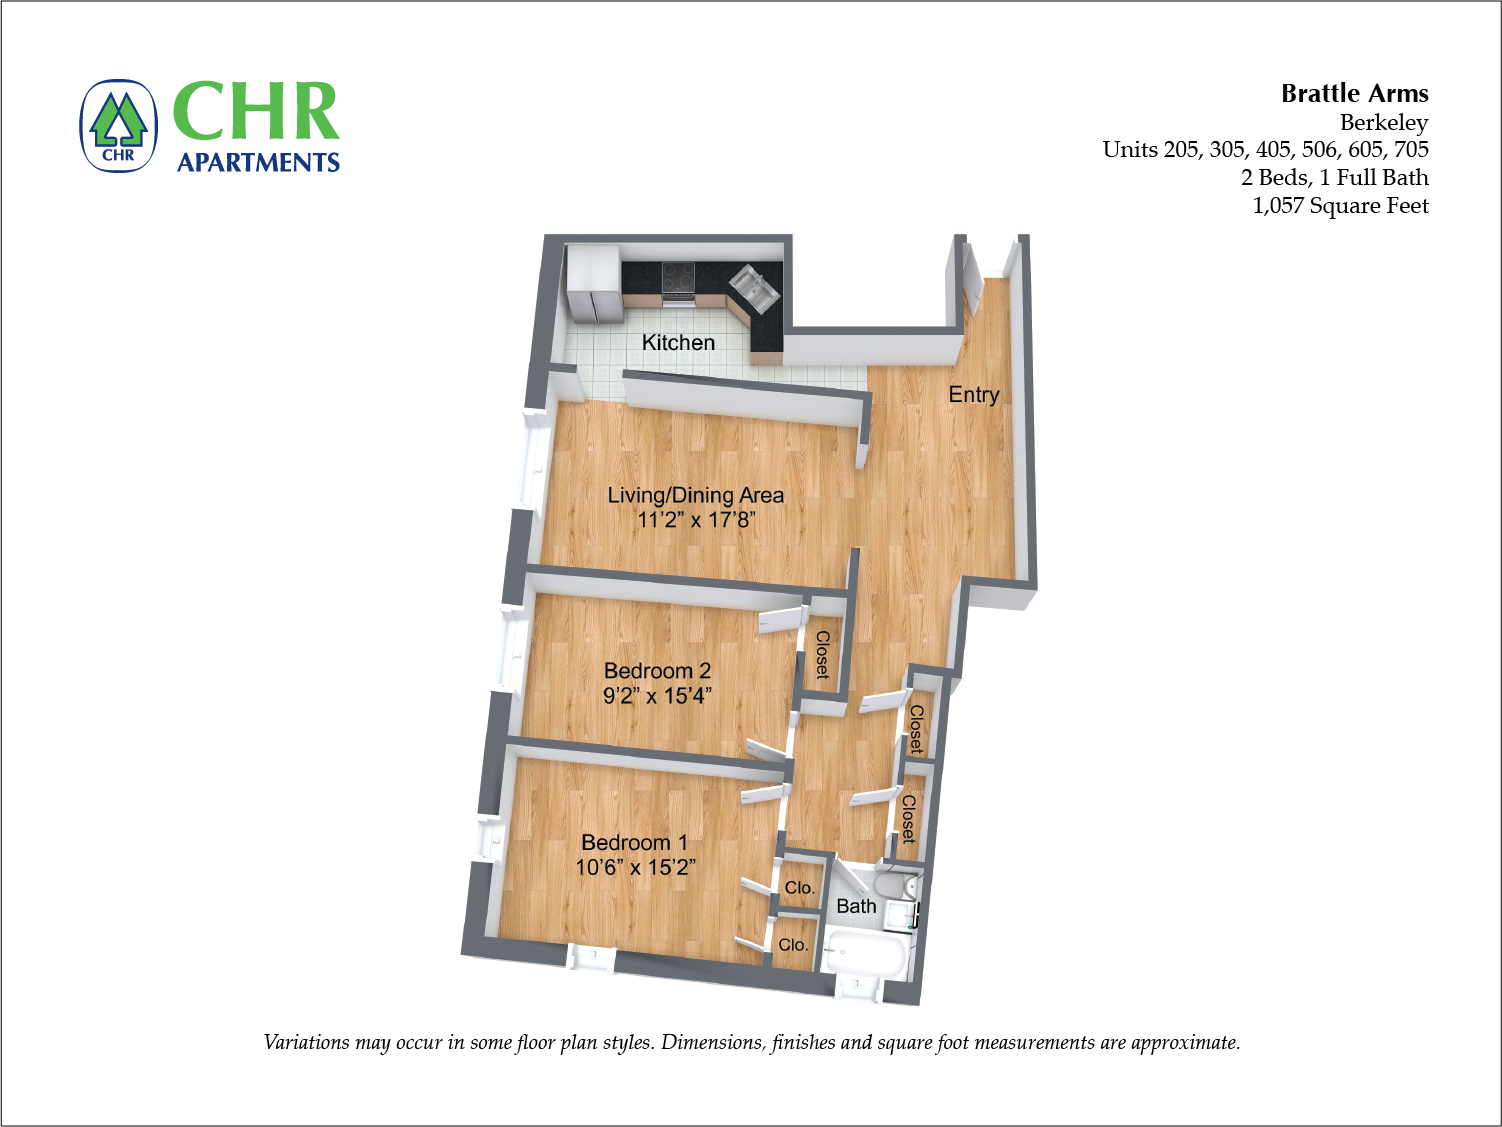 Click to view Floor plan Brattle Arms - 2 Bedroom image 3